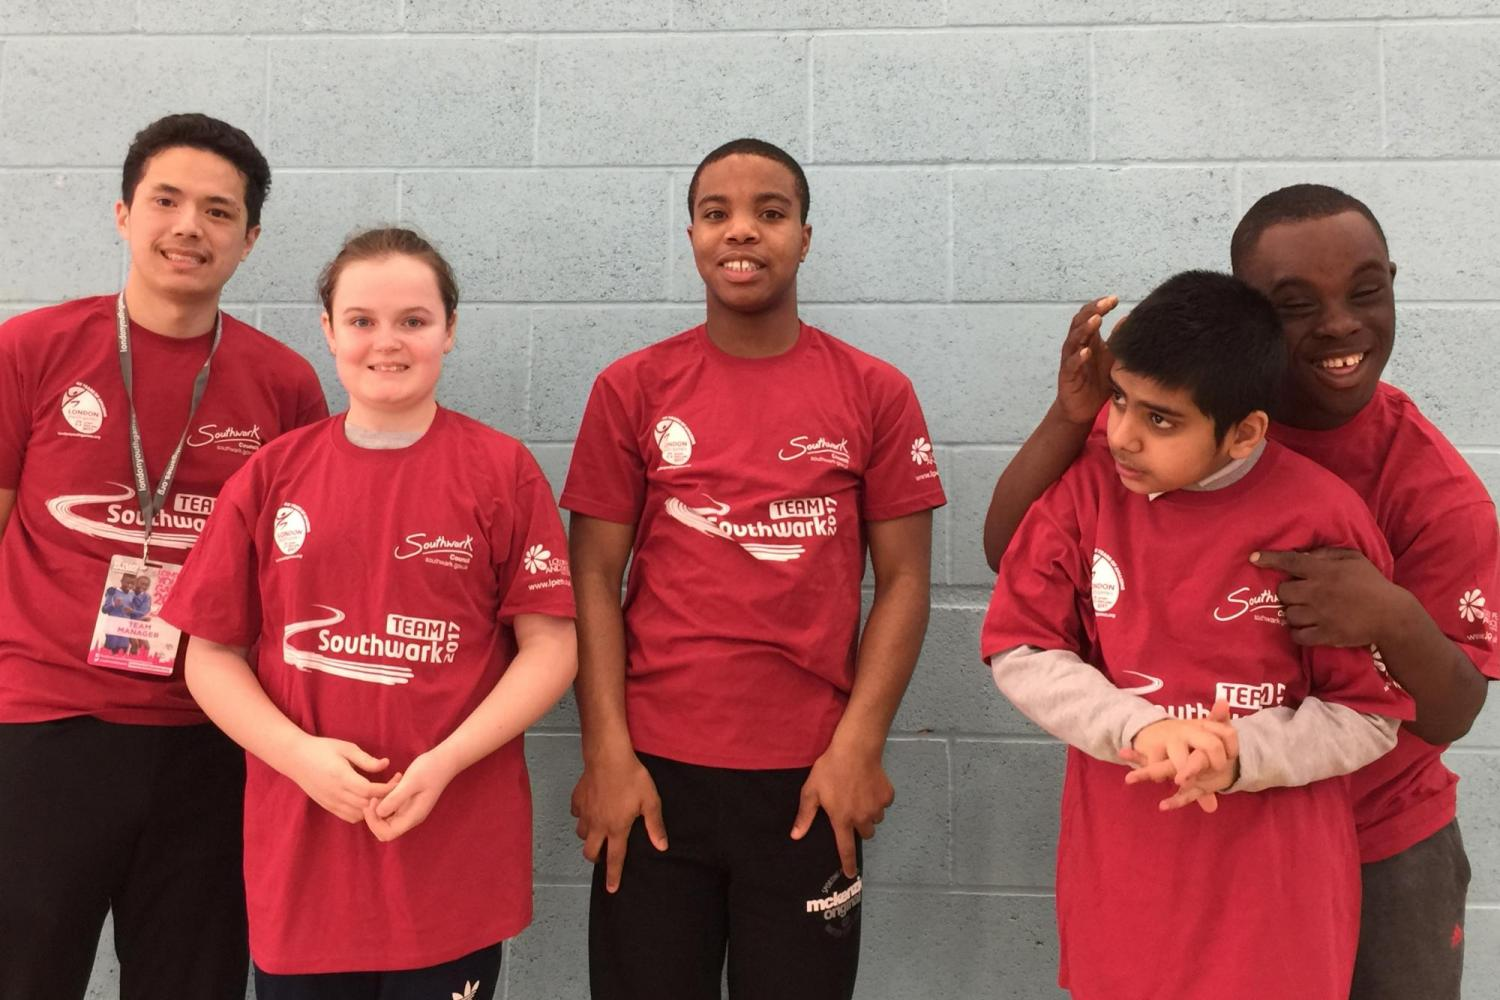 Team Southwark from Disability Sports Coach's Community Club Southwark